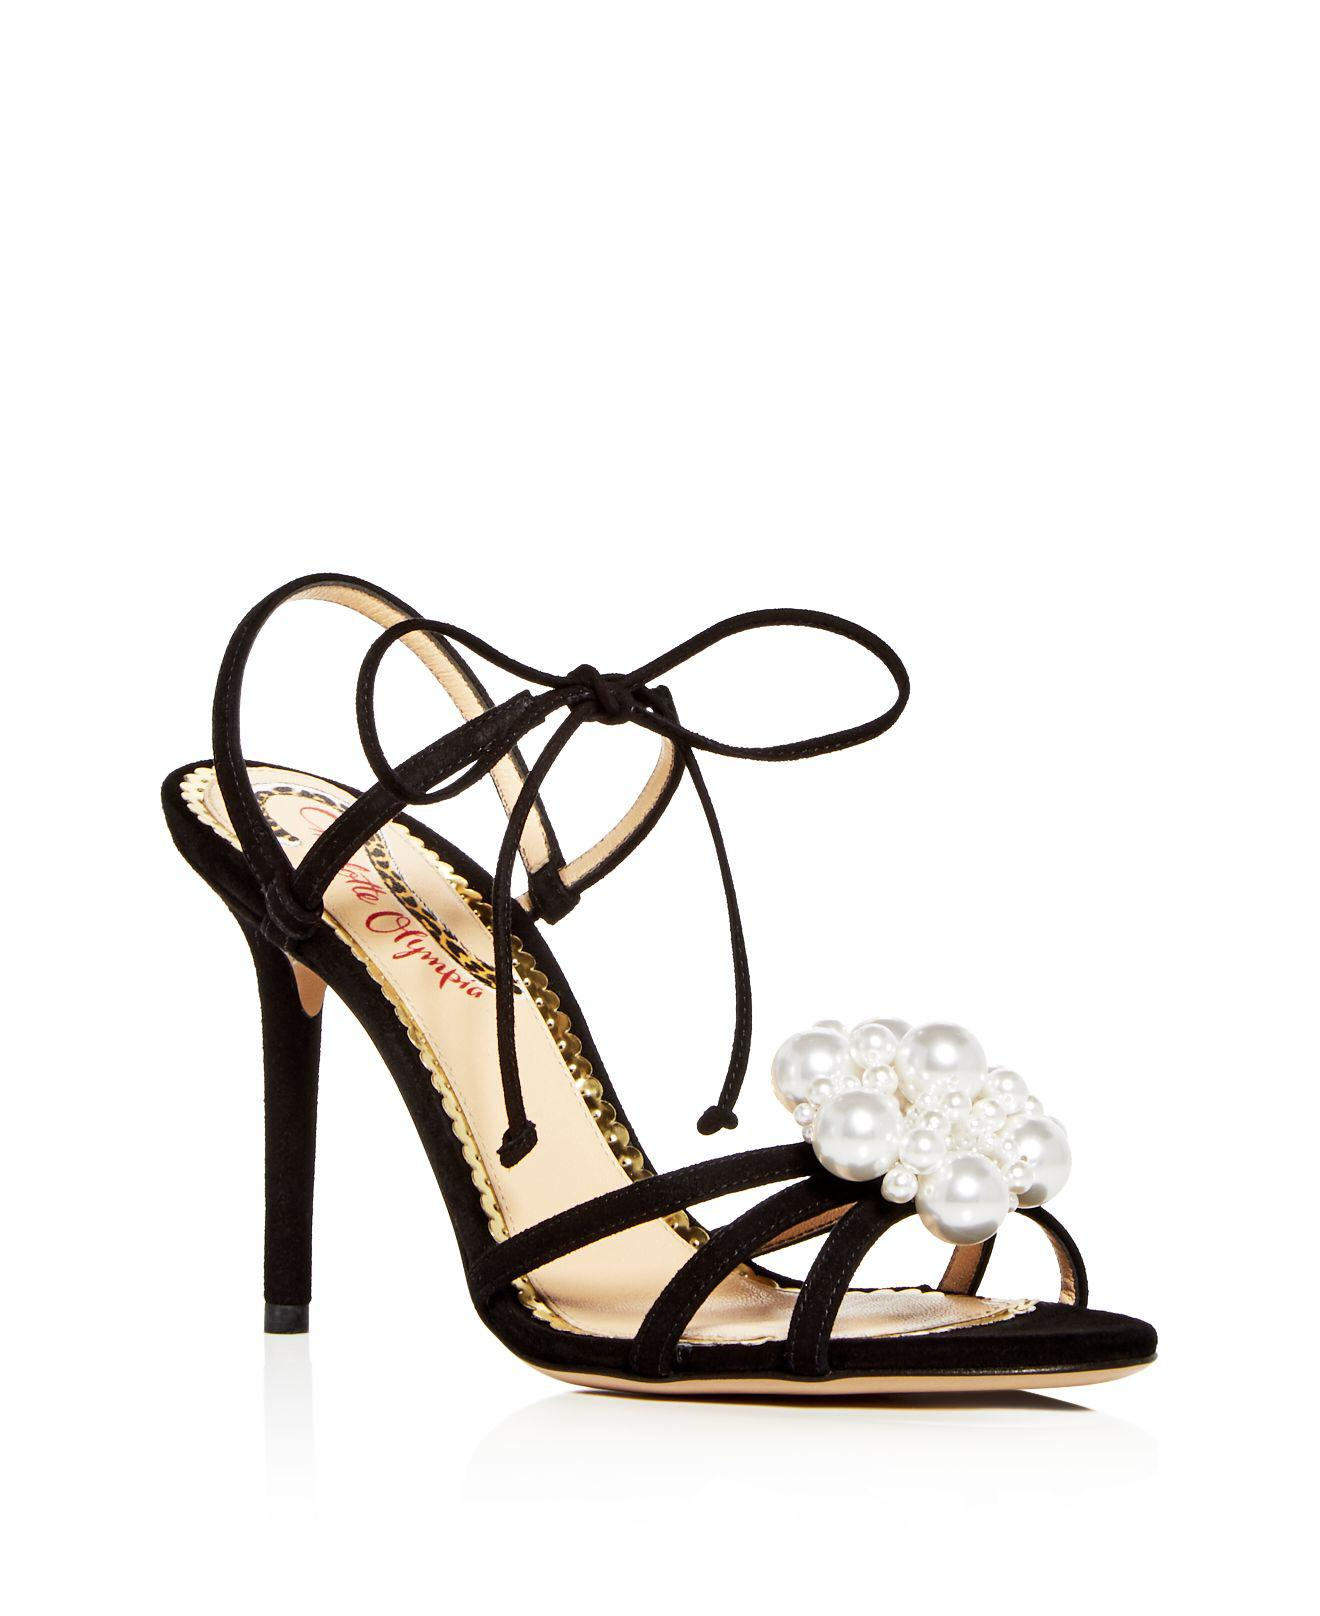 Charlotte Olympia Women's Diva Satin Strappy High-Heel Sandals